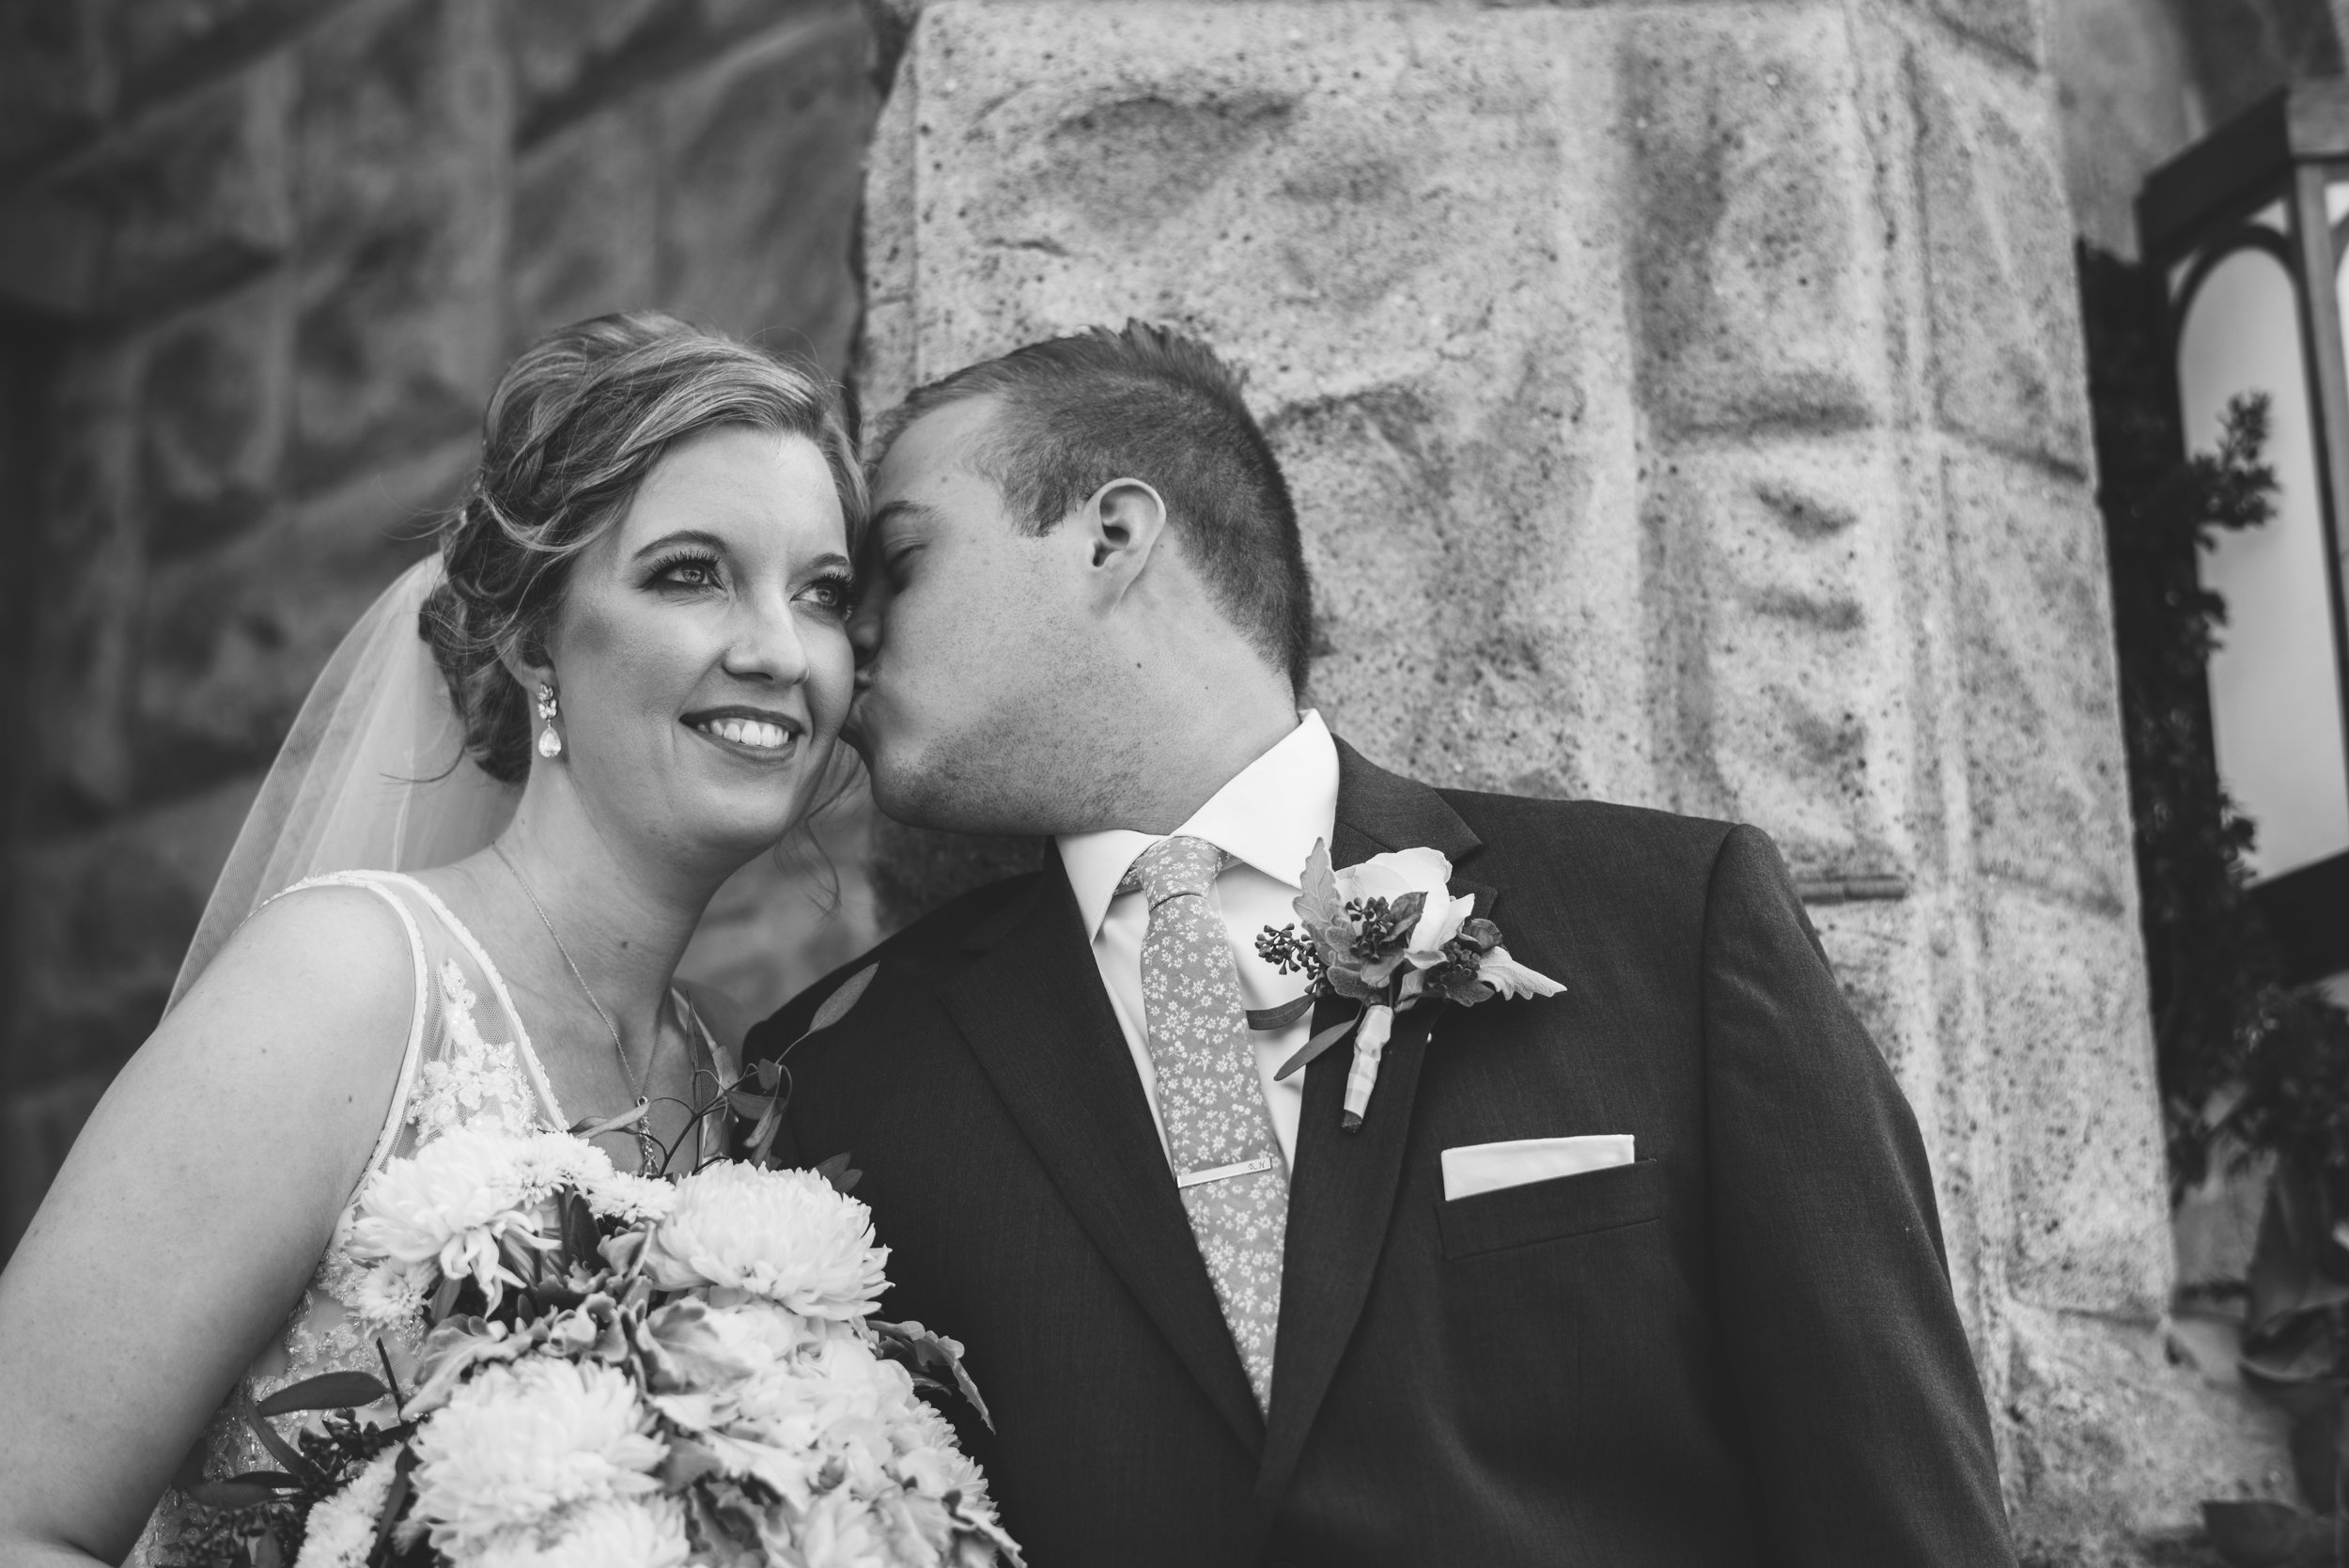 photographer for weddings in findlay